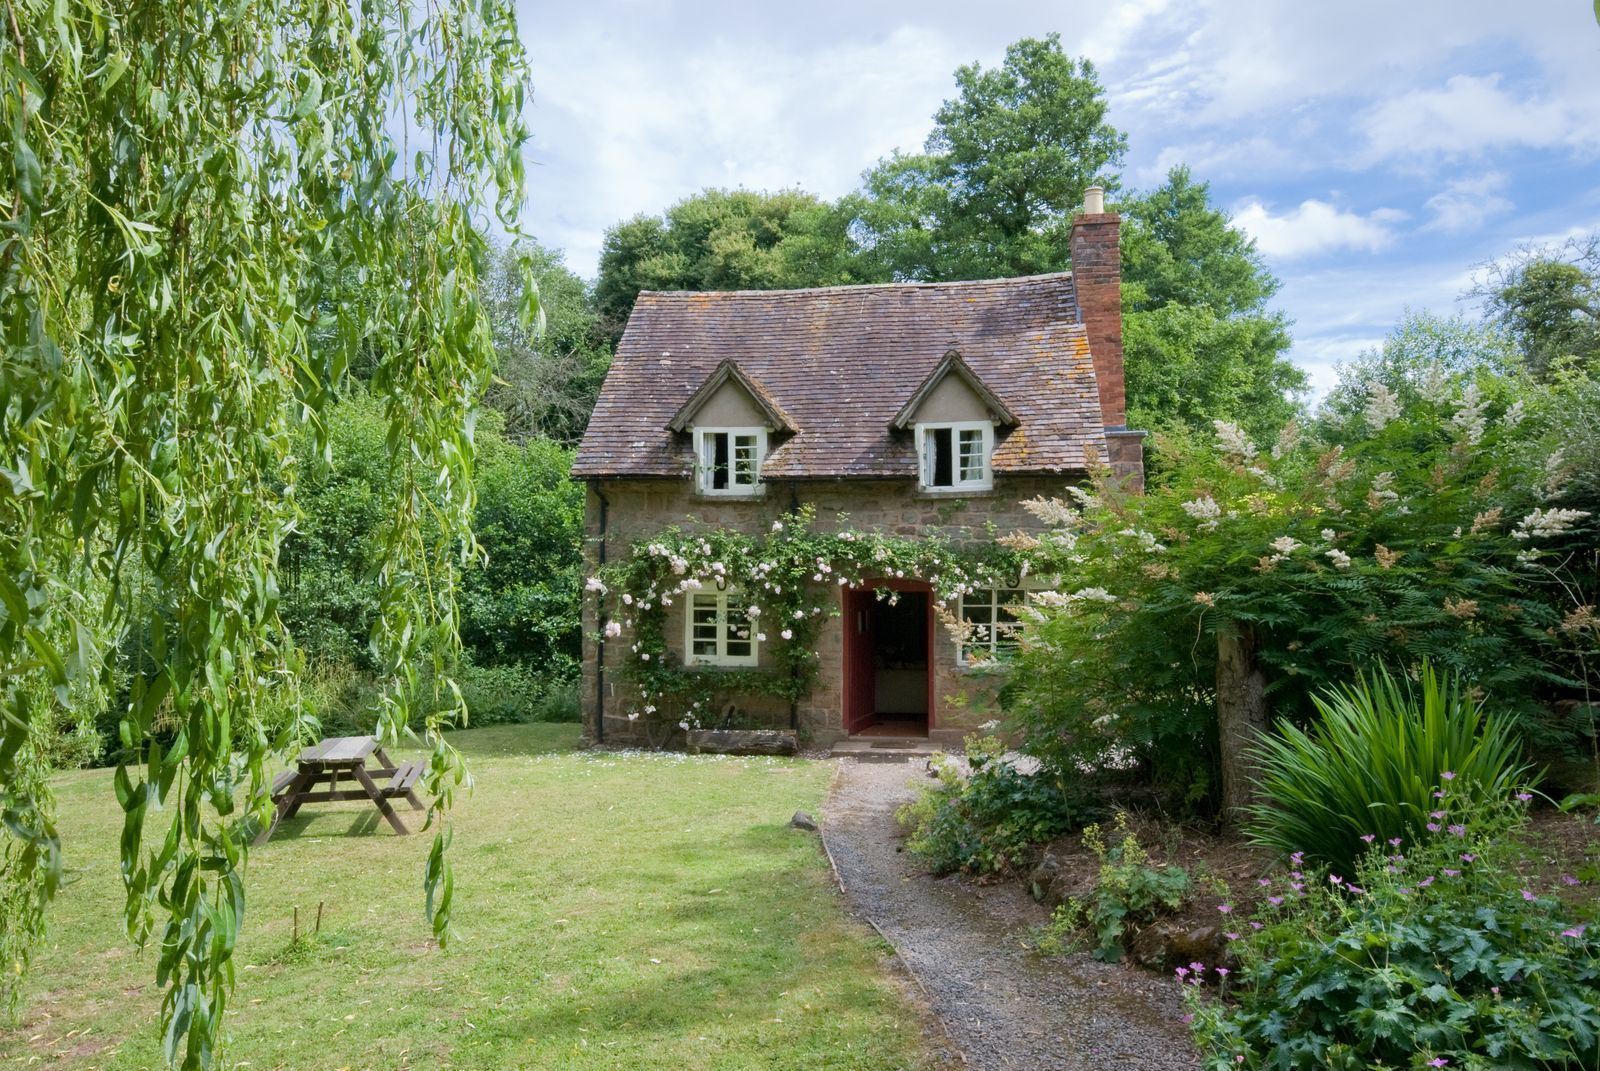 Photo of This English cottage could quite possibly be the most romantic place to spend Valentine's Day